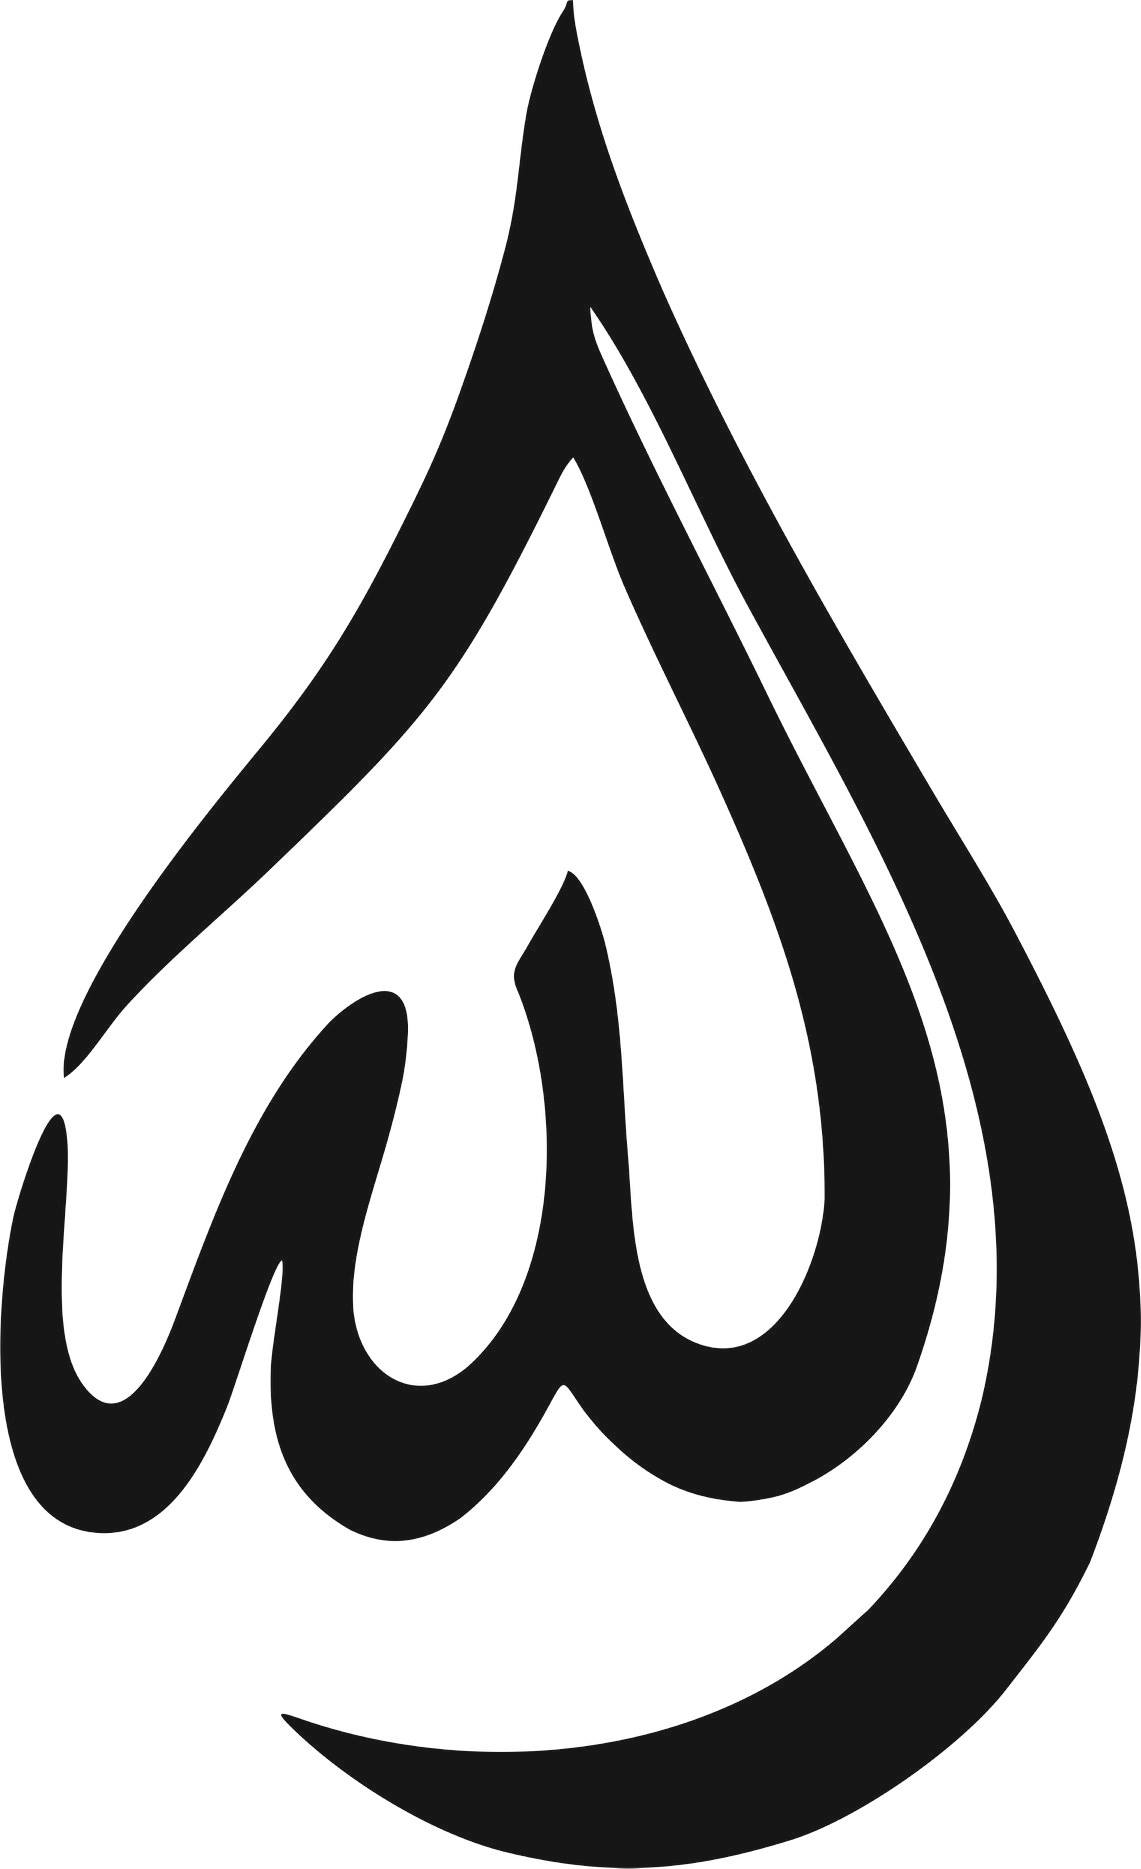 islamic calligraphy vector art jpg image free download - 3axis.co  3axis.co